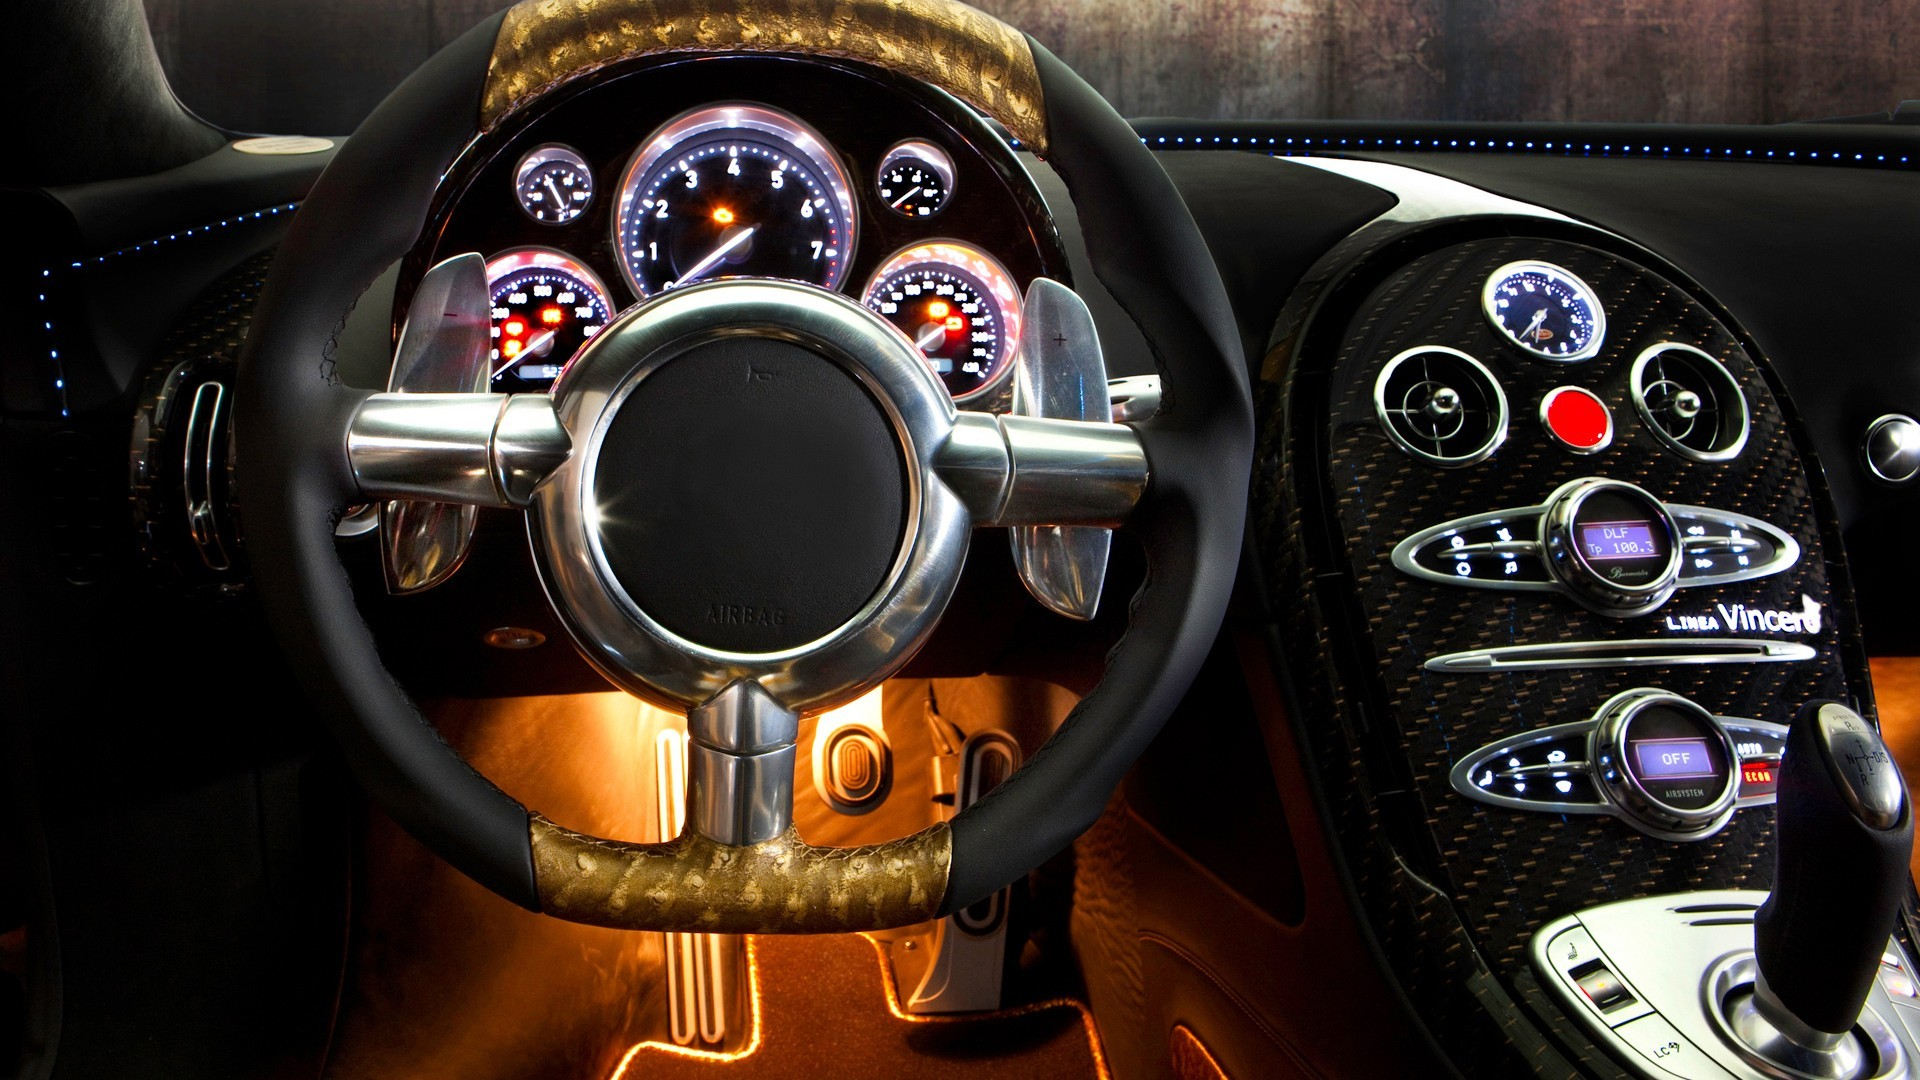 Bugatti veyron wallpapers pictures images bugatti veyron full hd wallpaper voltagebd Choice Image